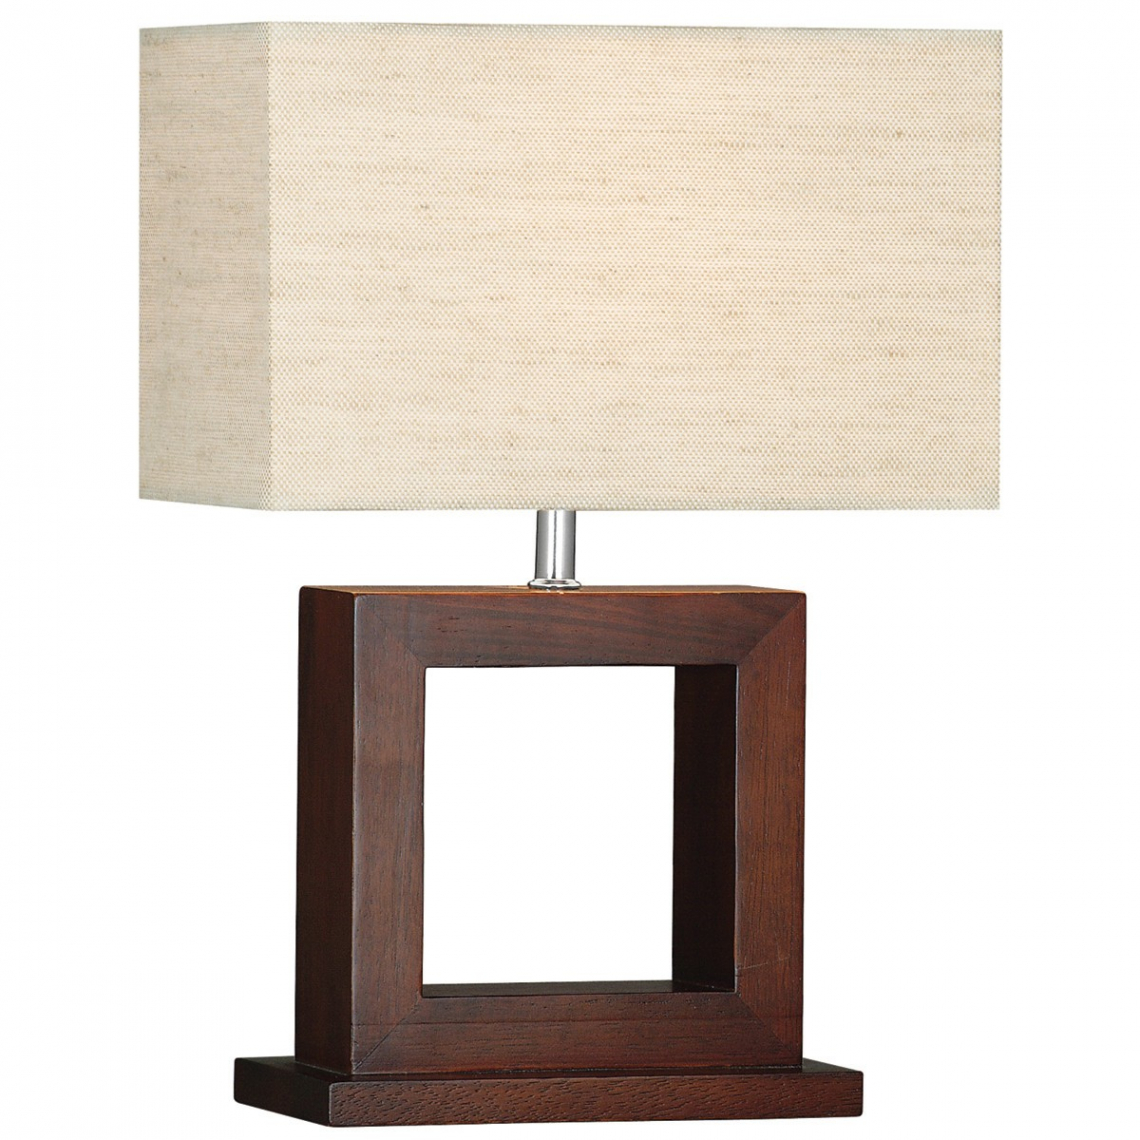 Cosmopolitan Dark Wood Table Lamp With Matching Oblong